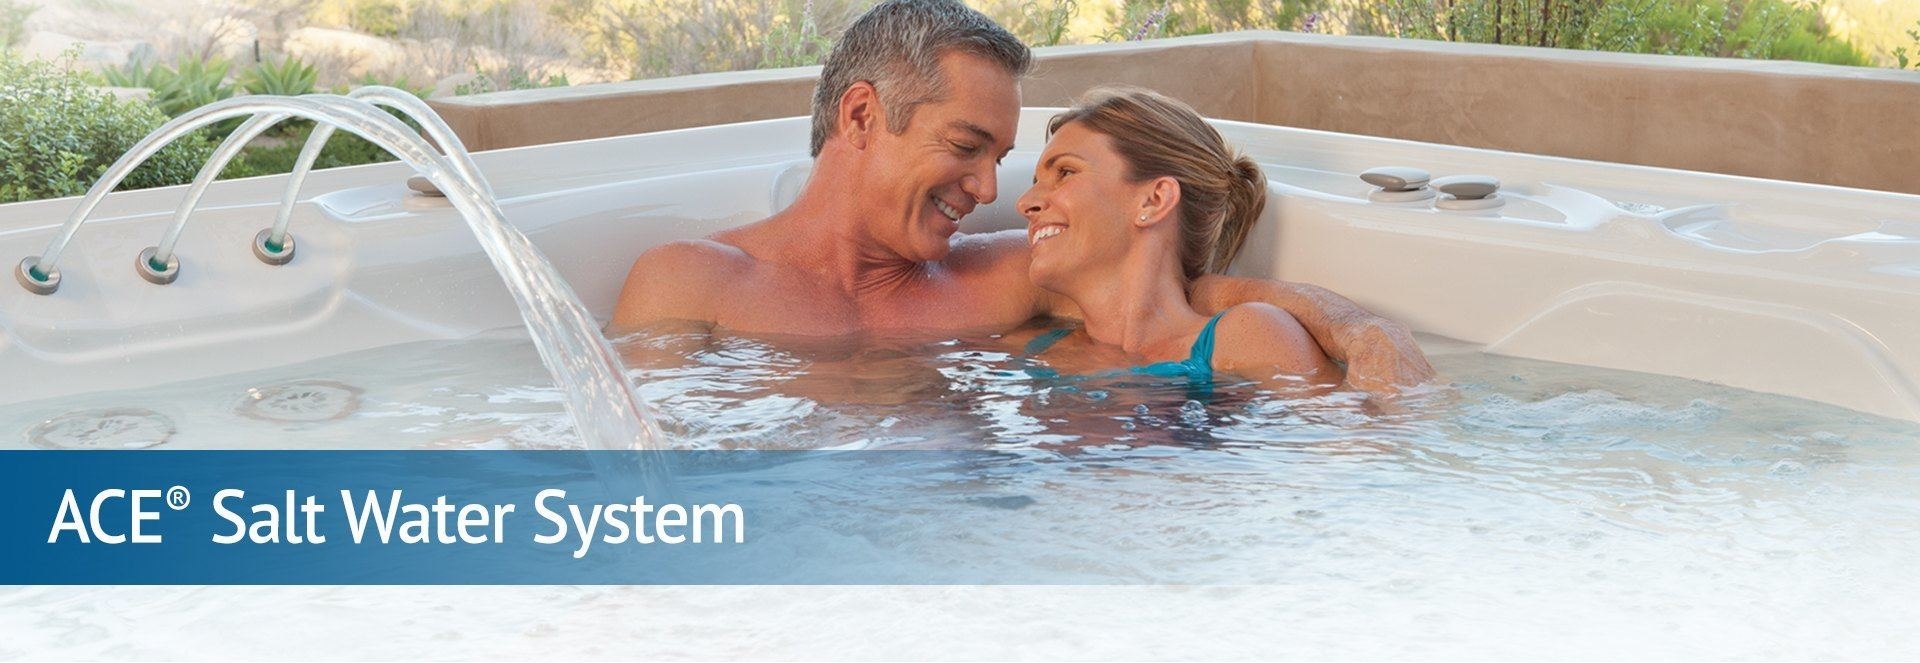 Ace Salt Water System The Hot Tub Store